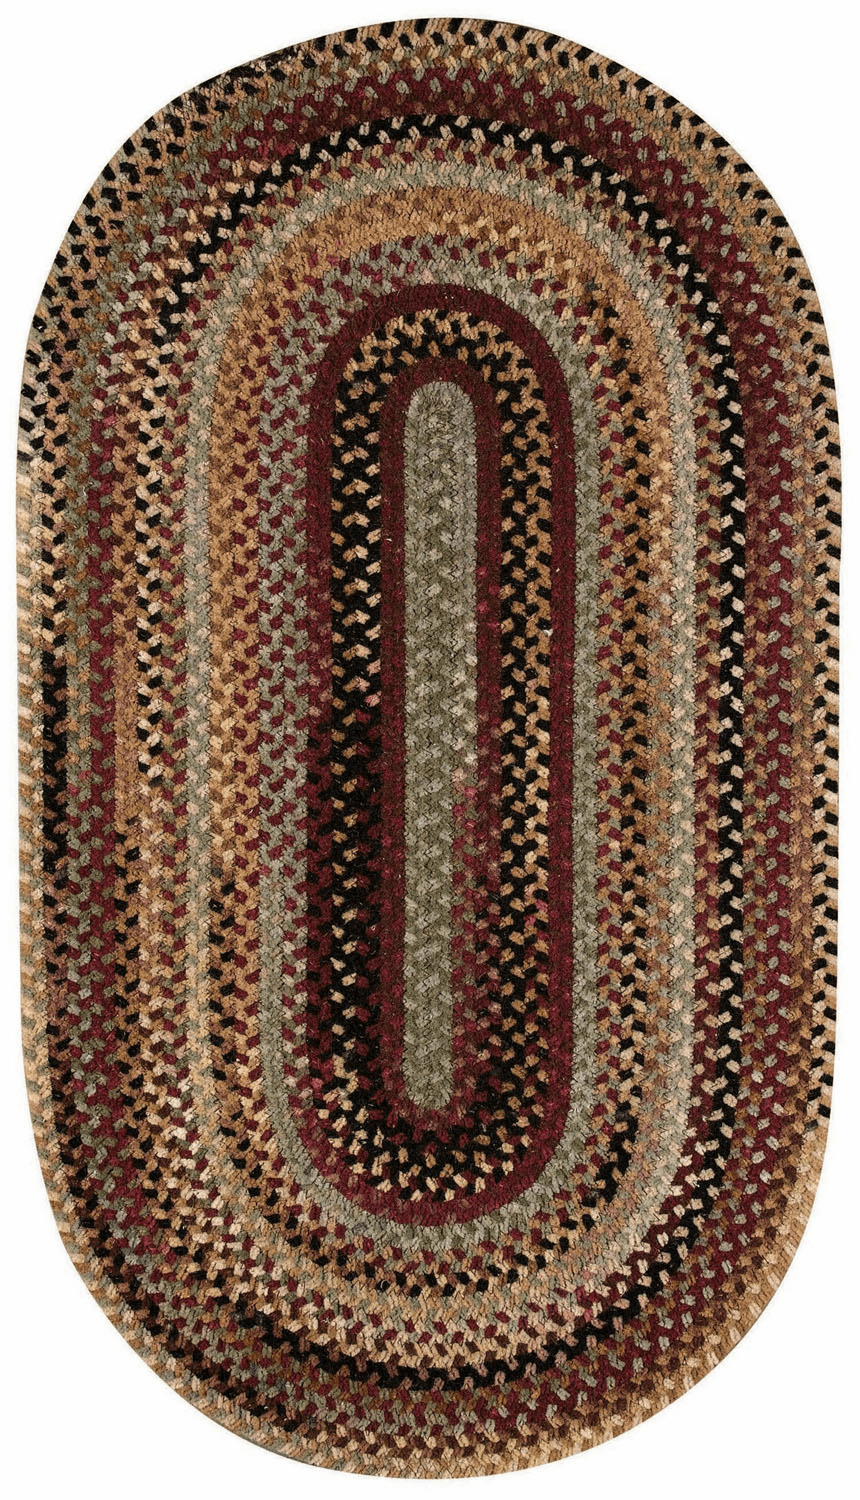 Hand-Braided Burgundy Rug